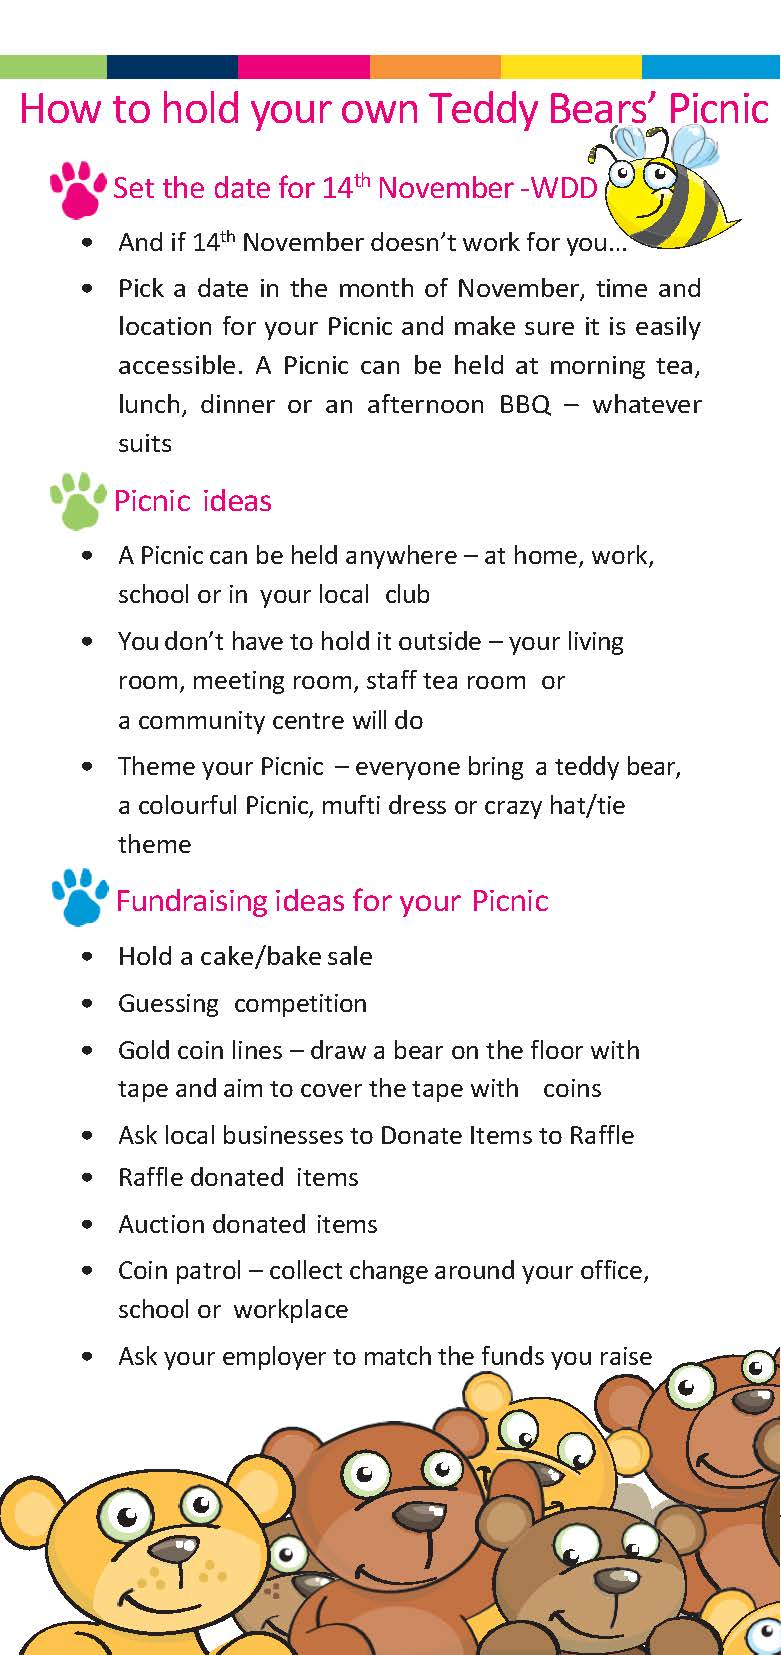 WORLD-DIABETESDAY_Teddy Bears Picnic-Picnic-Pack-Support-DANII_Page_2